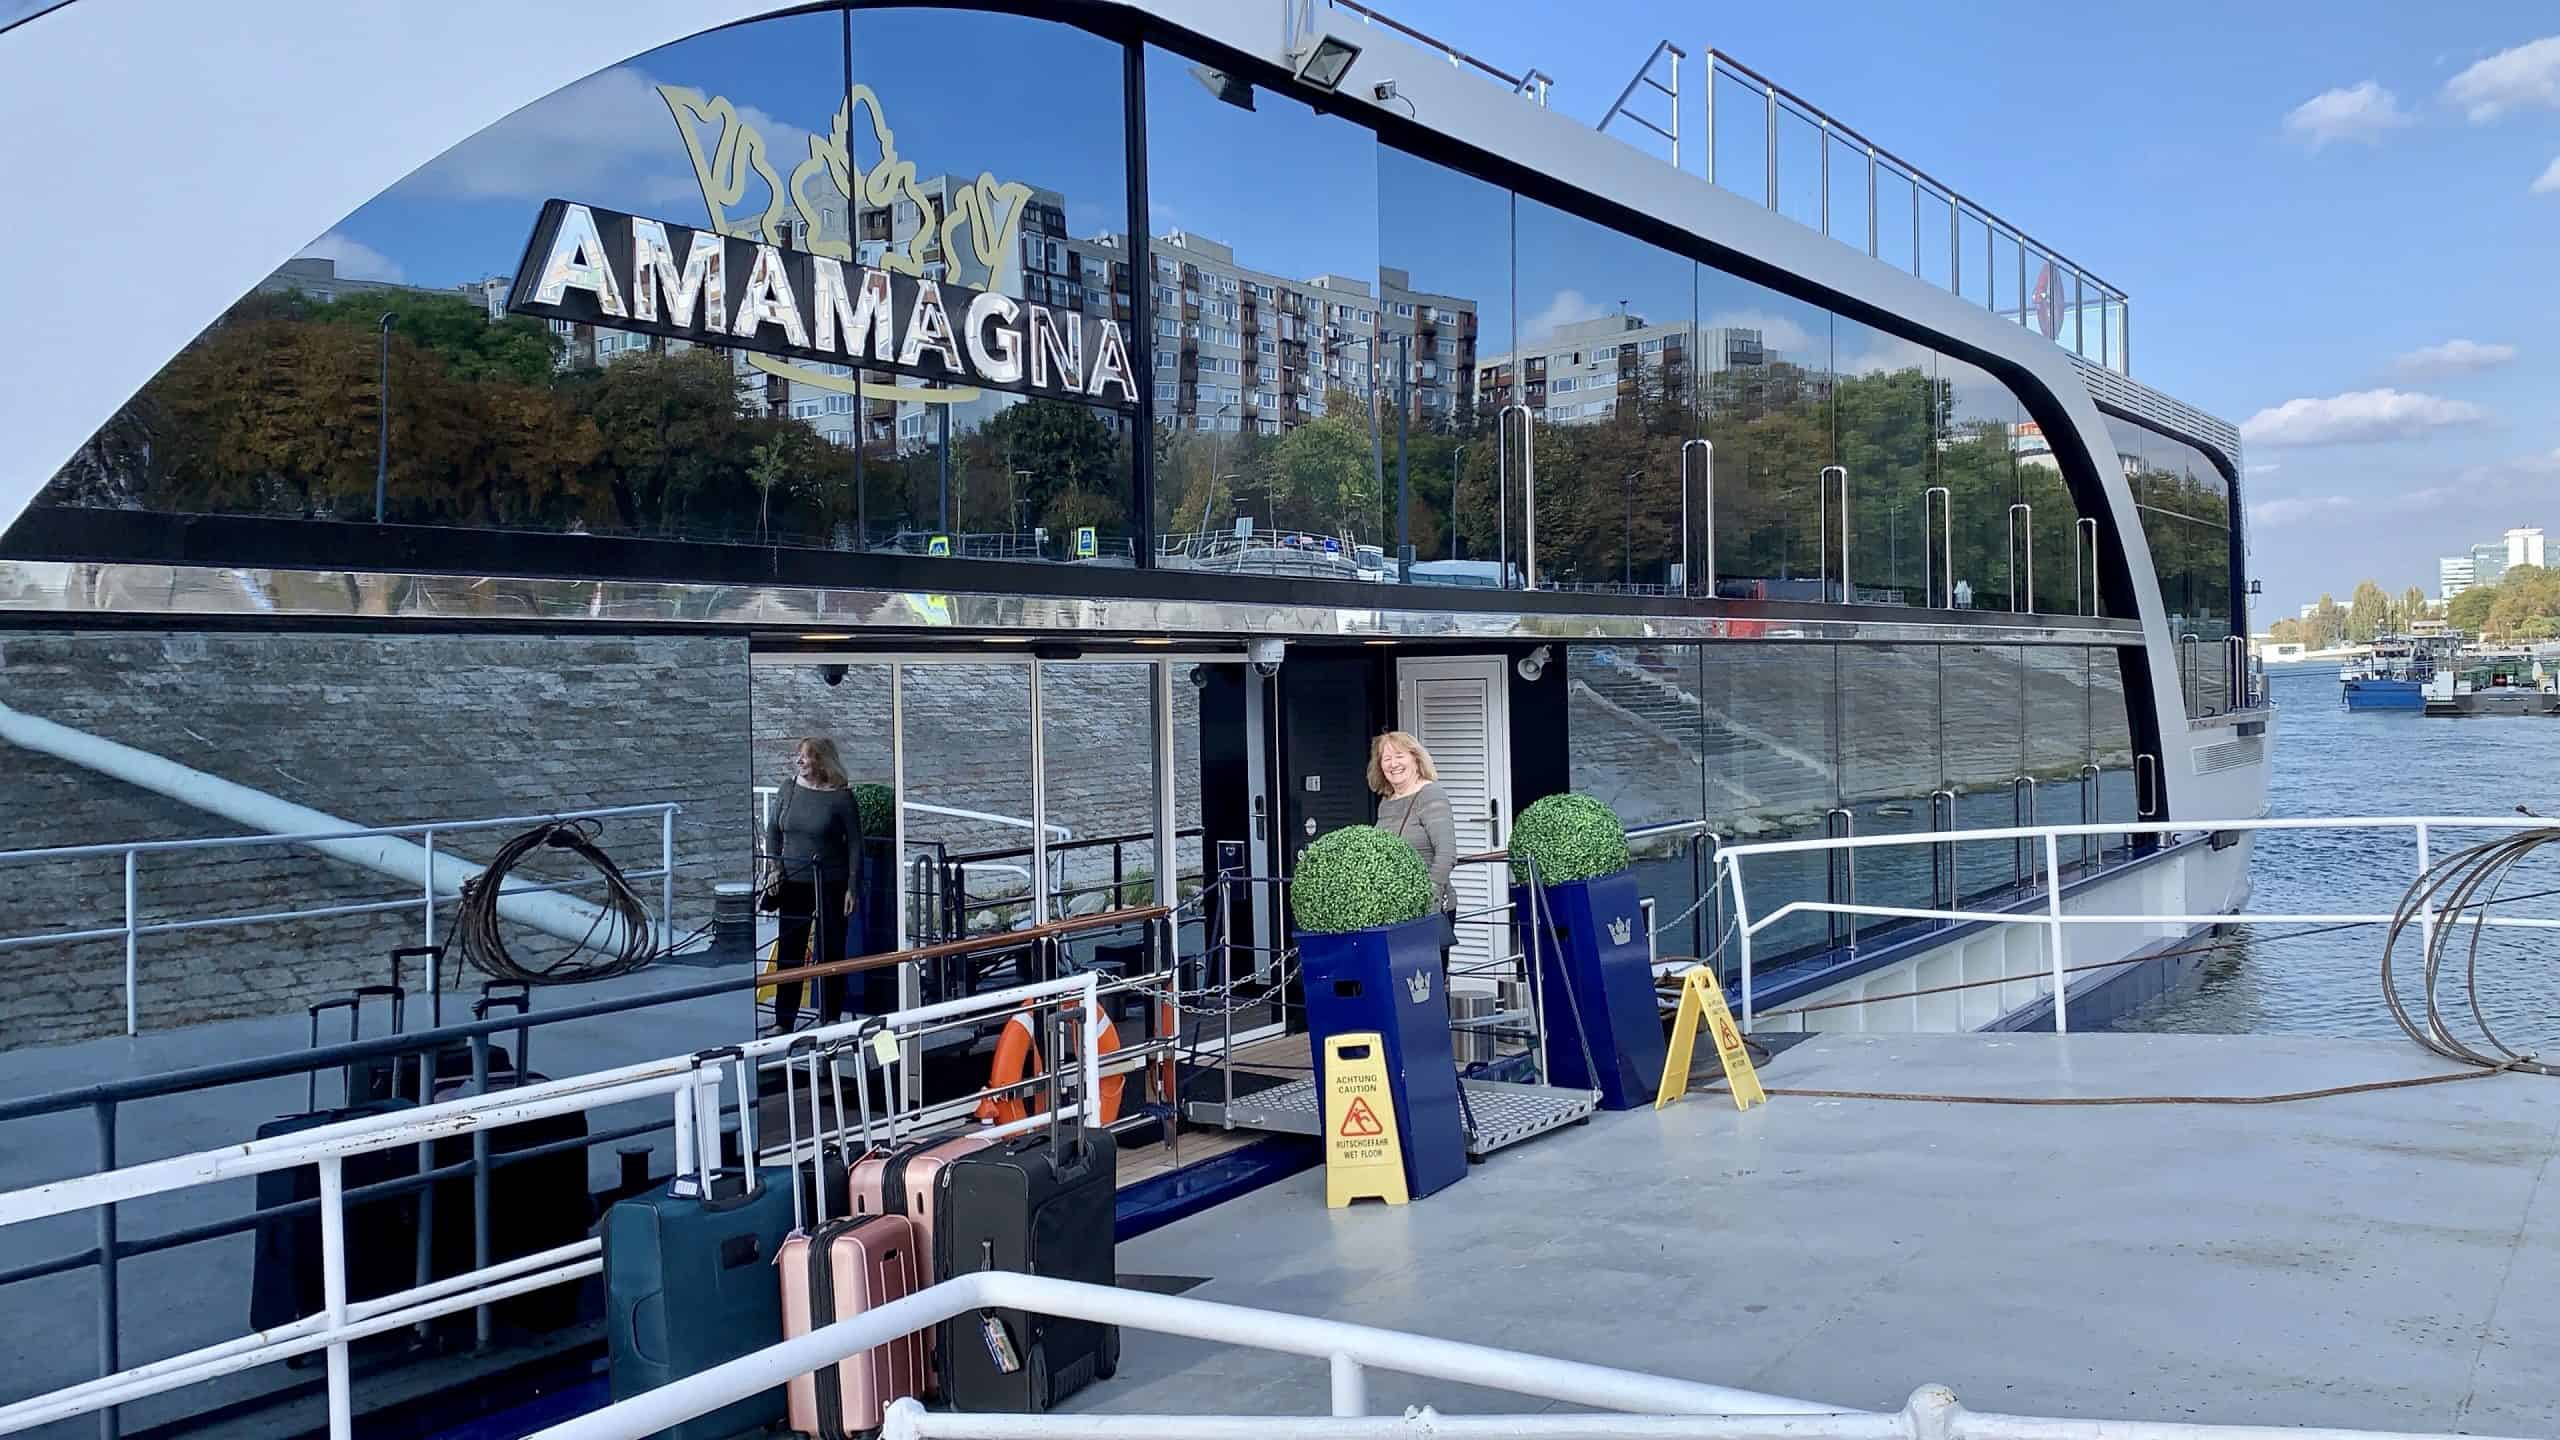 AmaMagna docked on the Danube best Danube river cruise